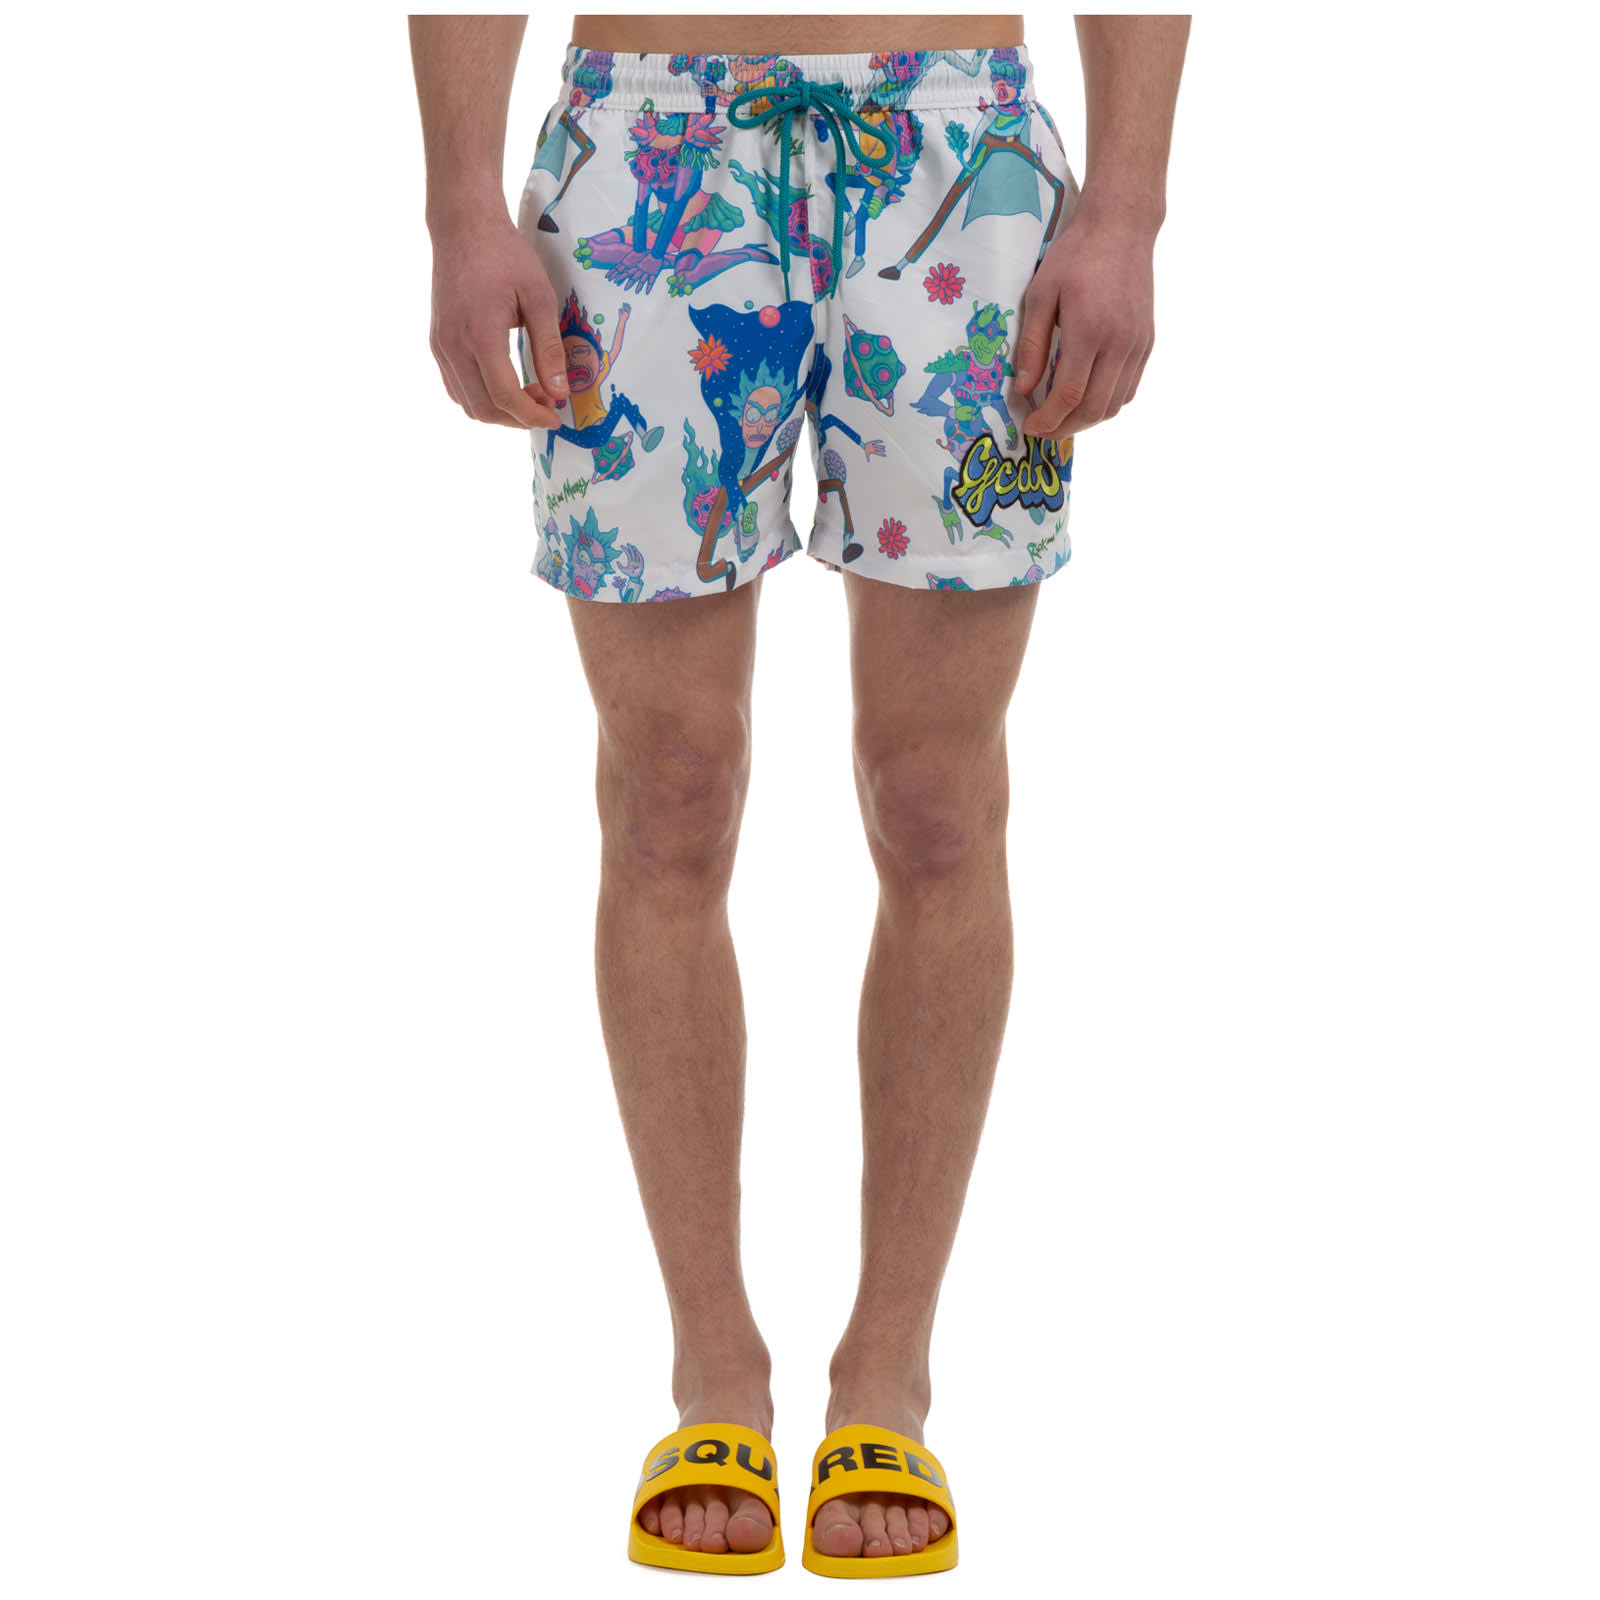 Gcds Swimtrunks GCDS RICK & MORTY SWIMMING TRUNKS